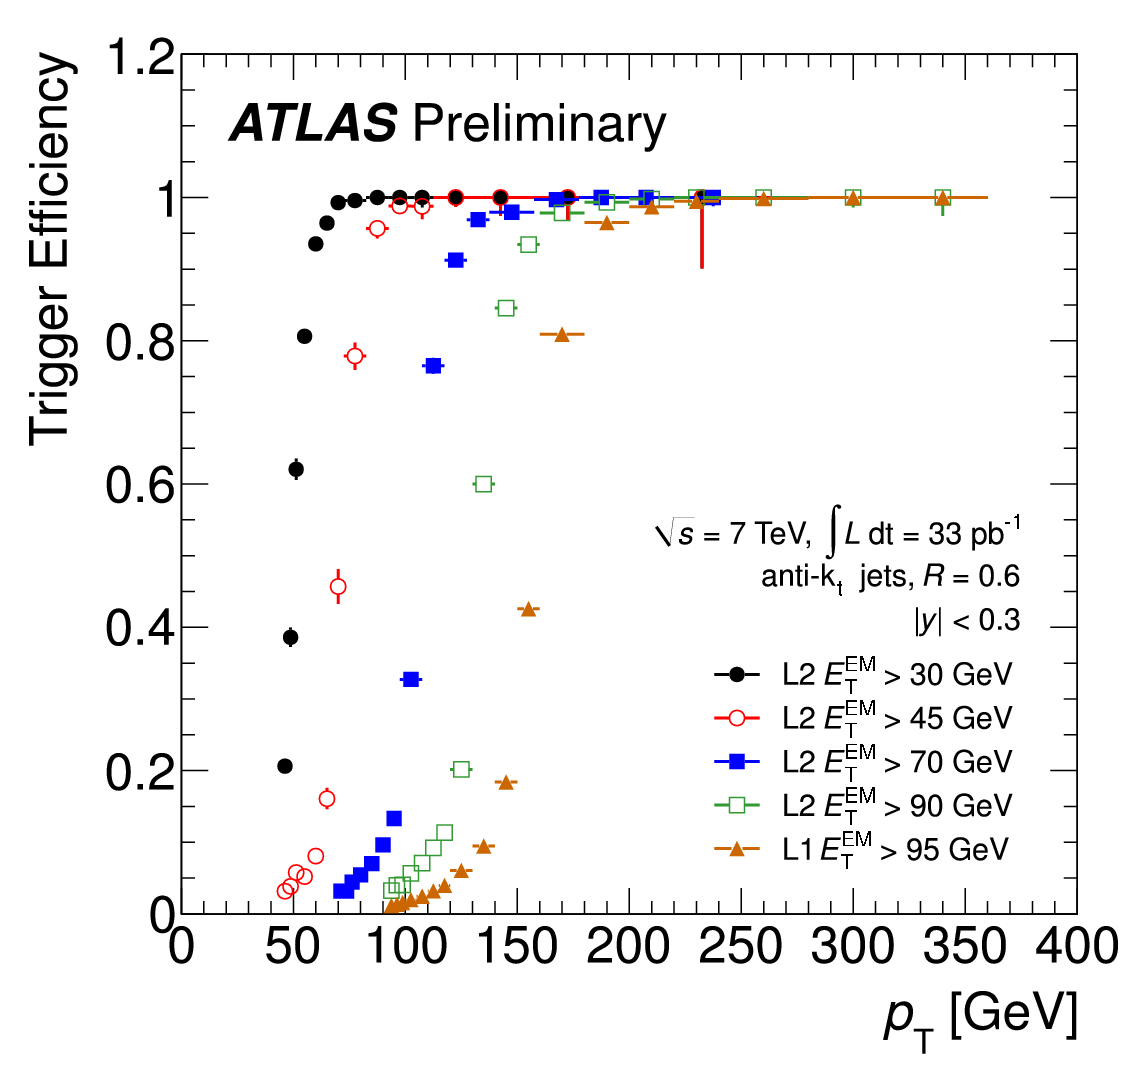 https://atlas.web.cern.ch/Atlas/GROUPS/PHYSICS/CONFNOTES/ATLAS-CONF-2011-047/fig_02a.png